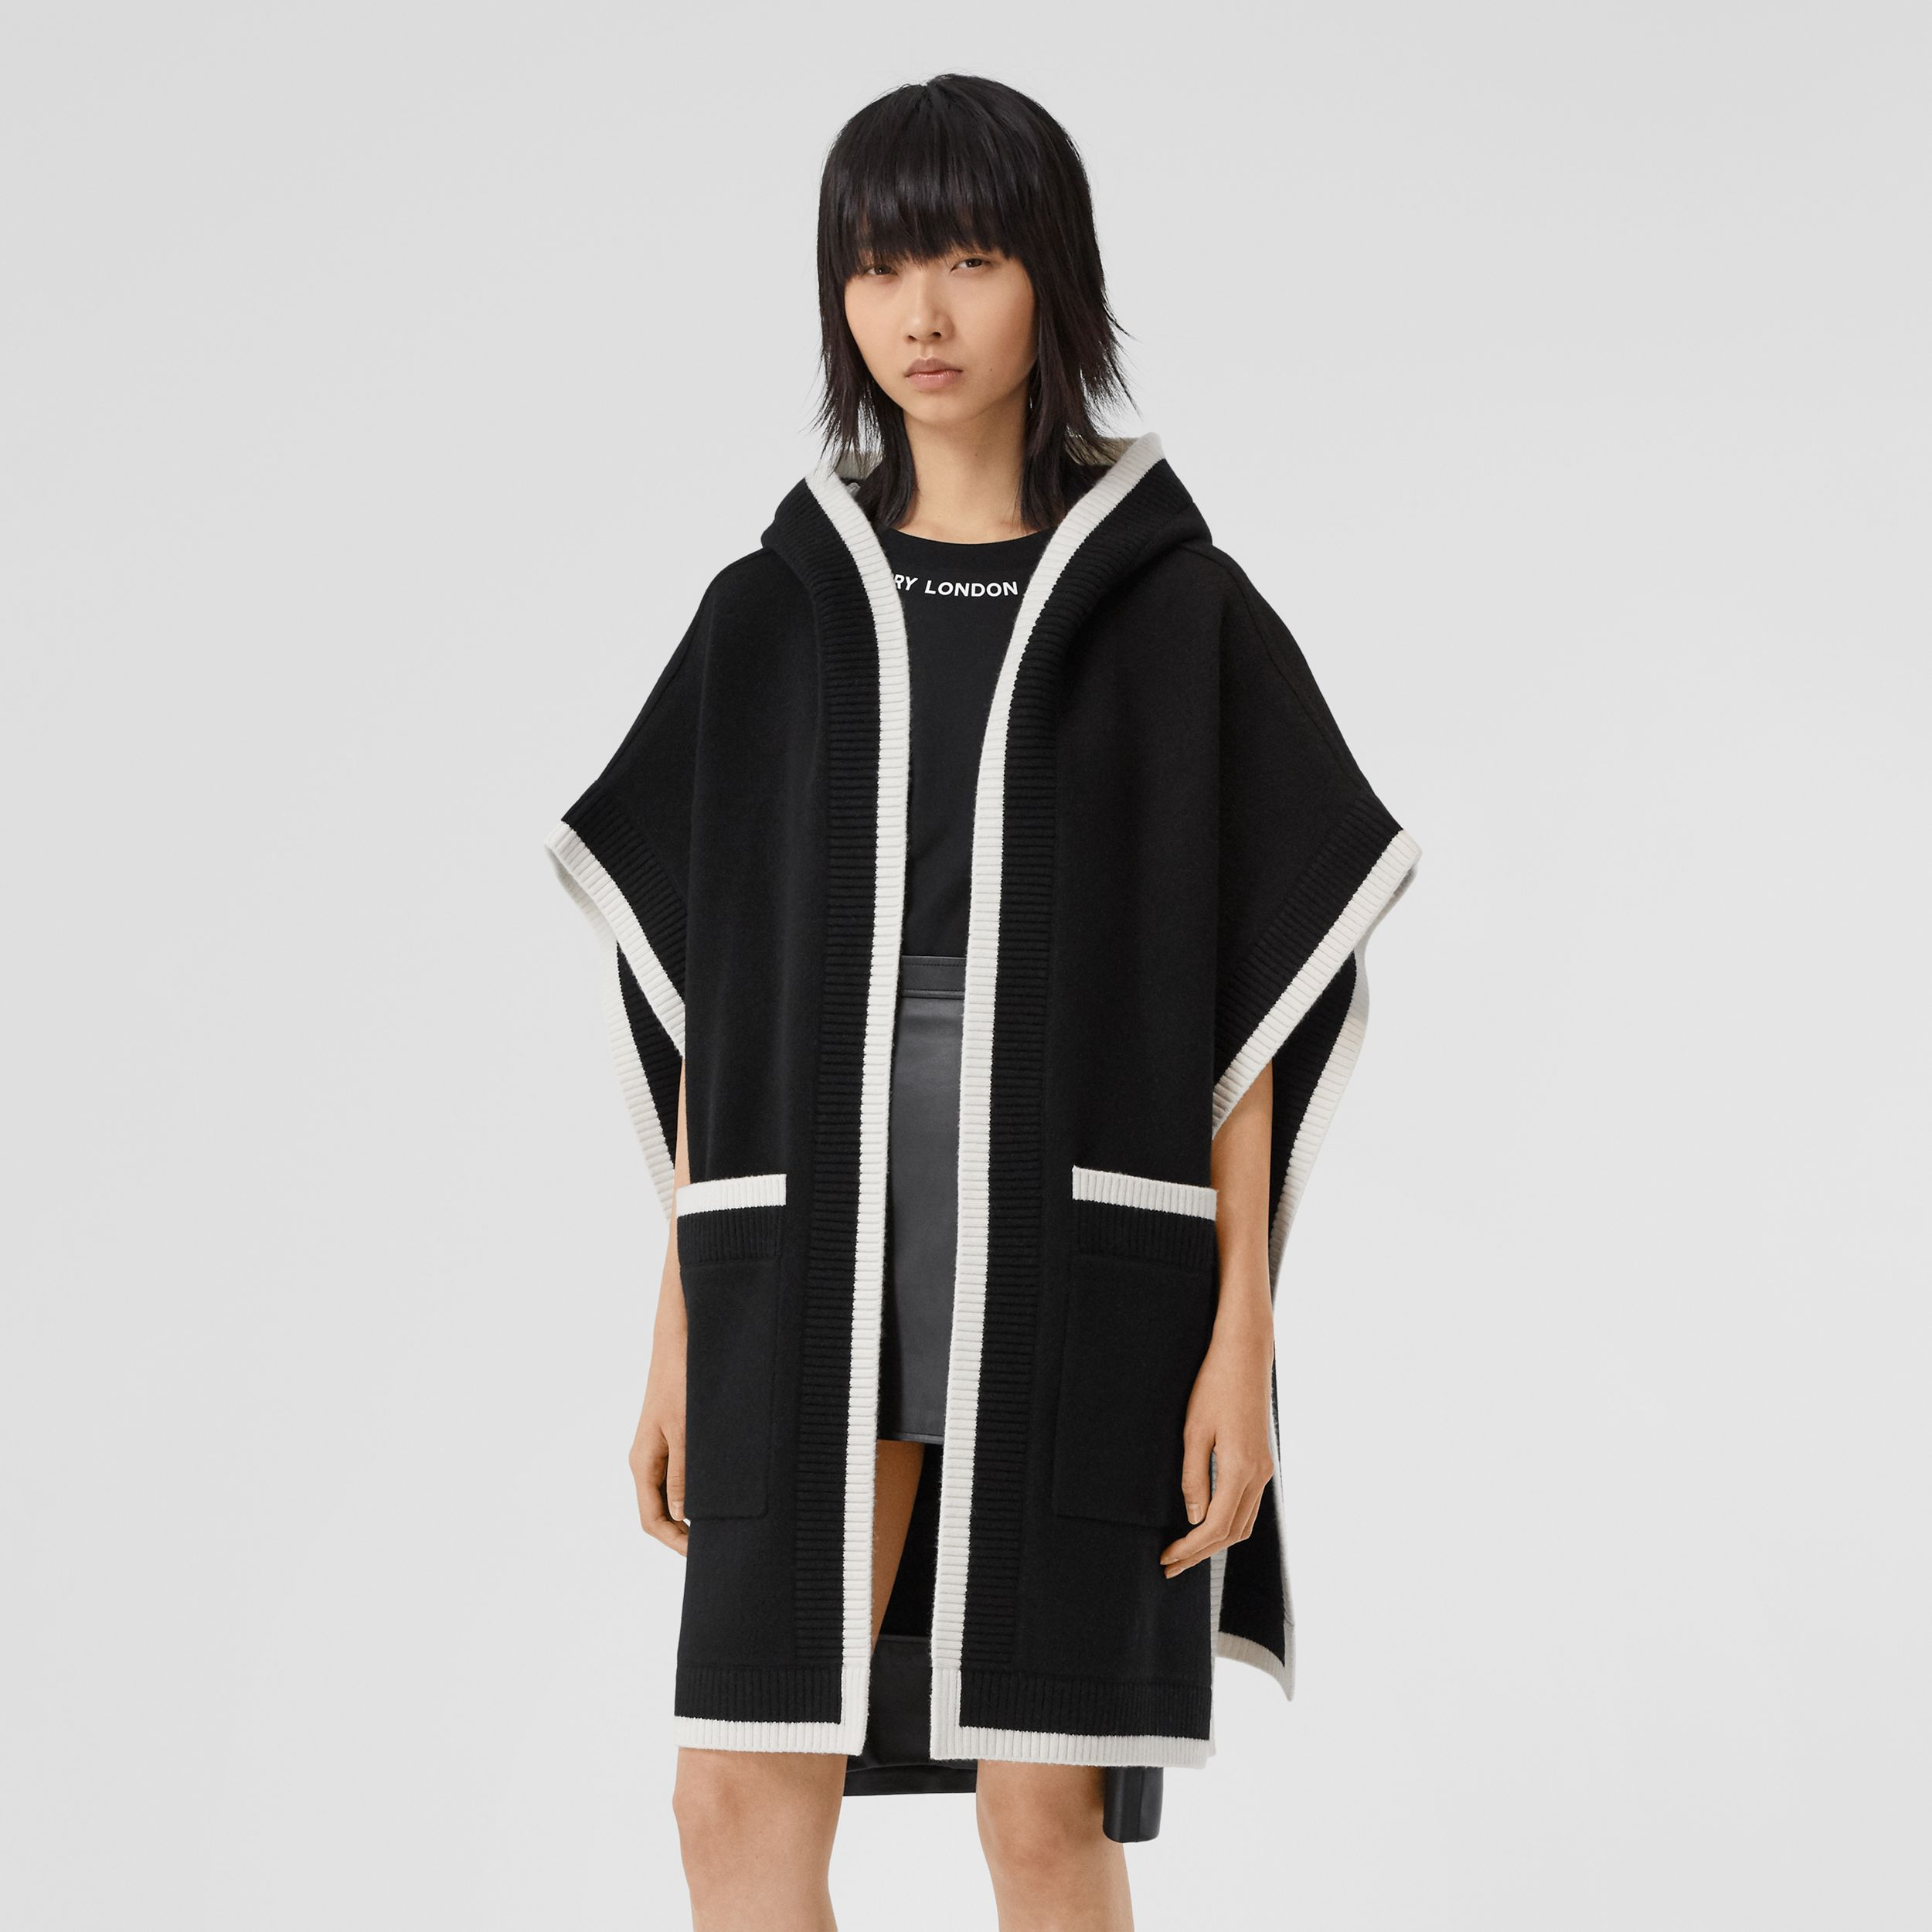 Logo Graphic Wool Cashmere Jacquard Hooded Cape in Black - Women | Burberry - 3